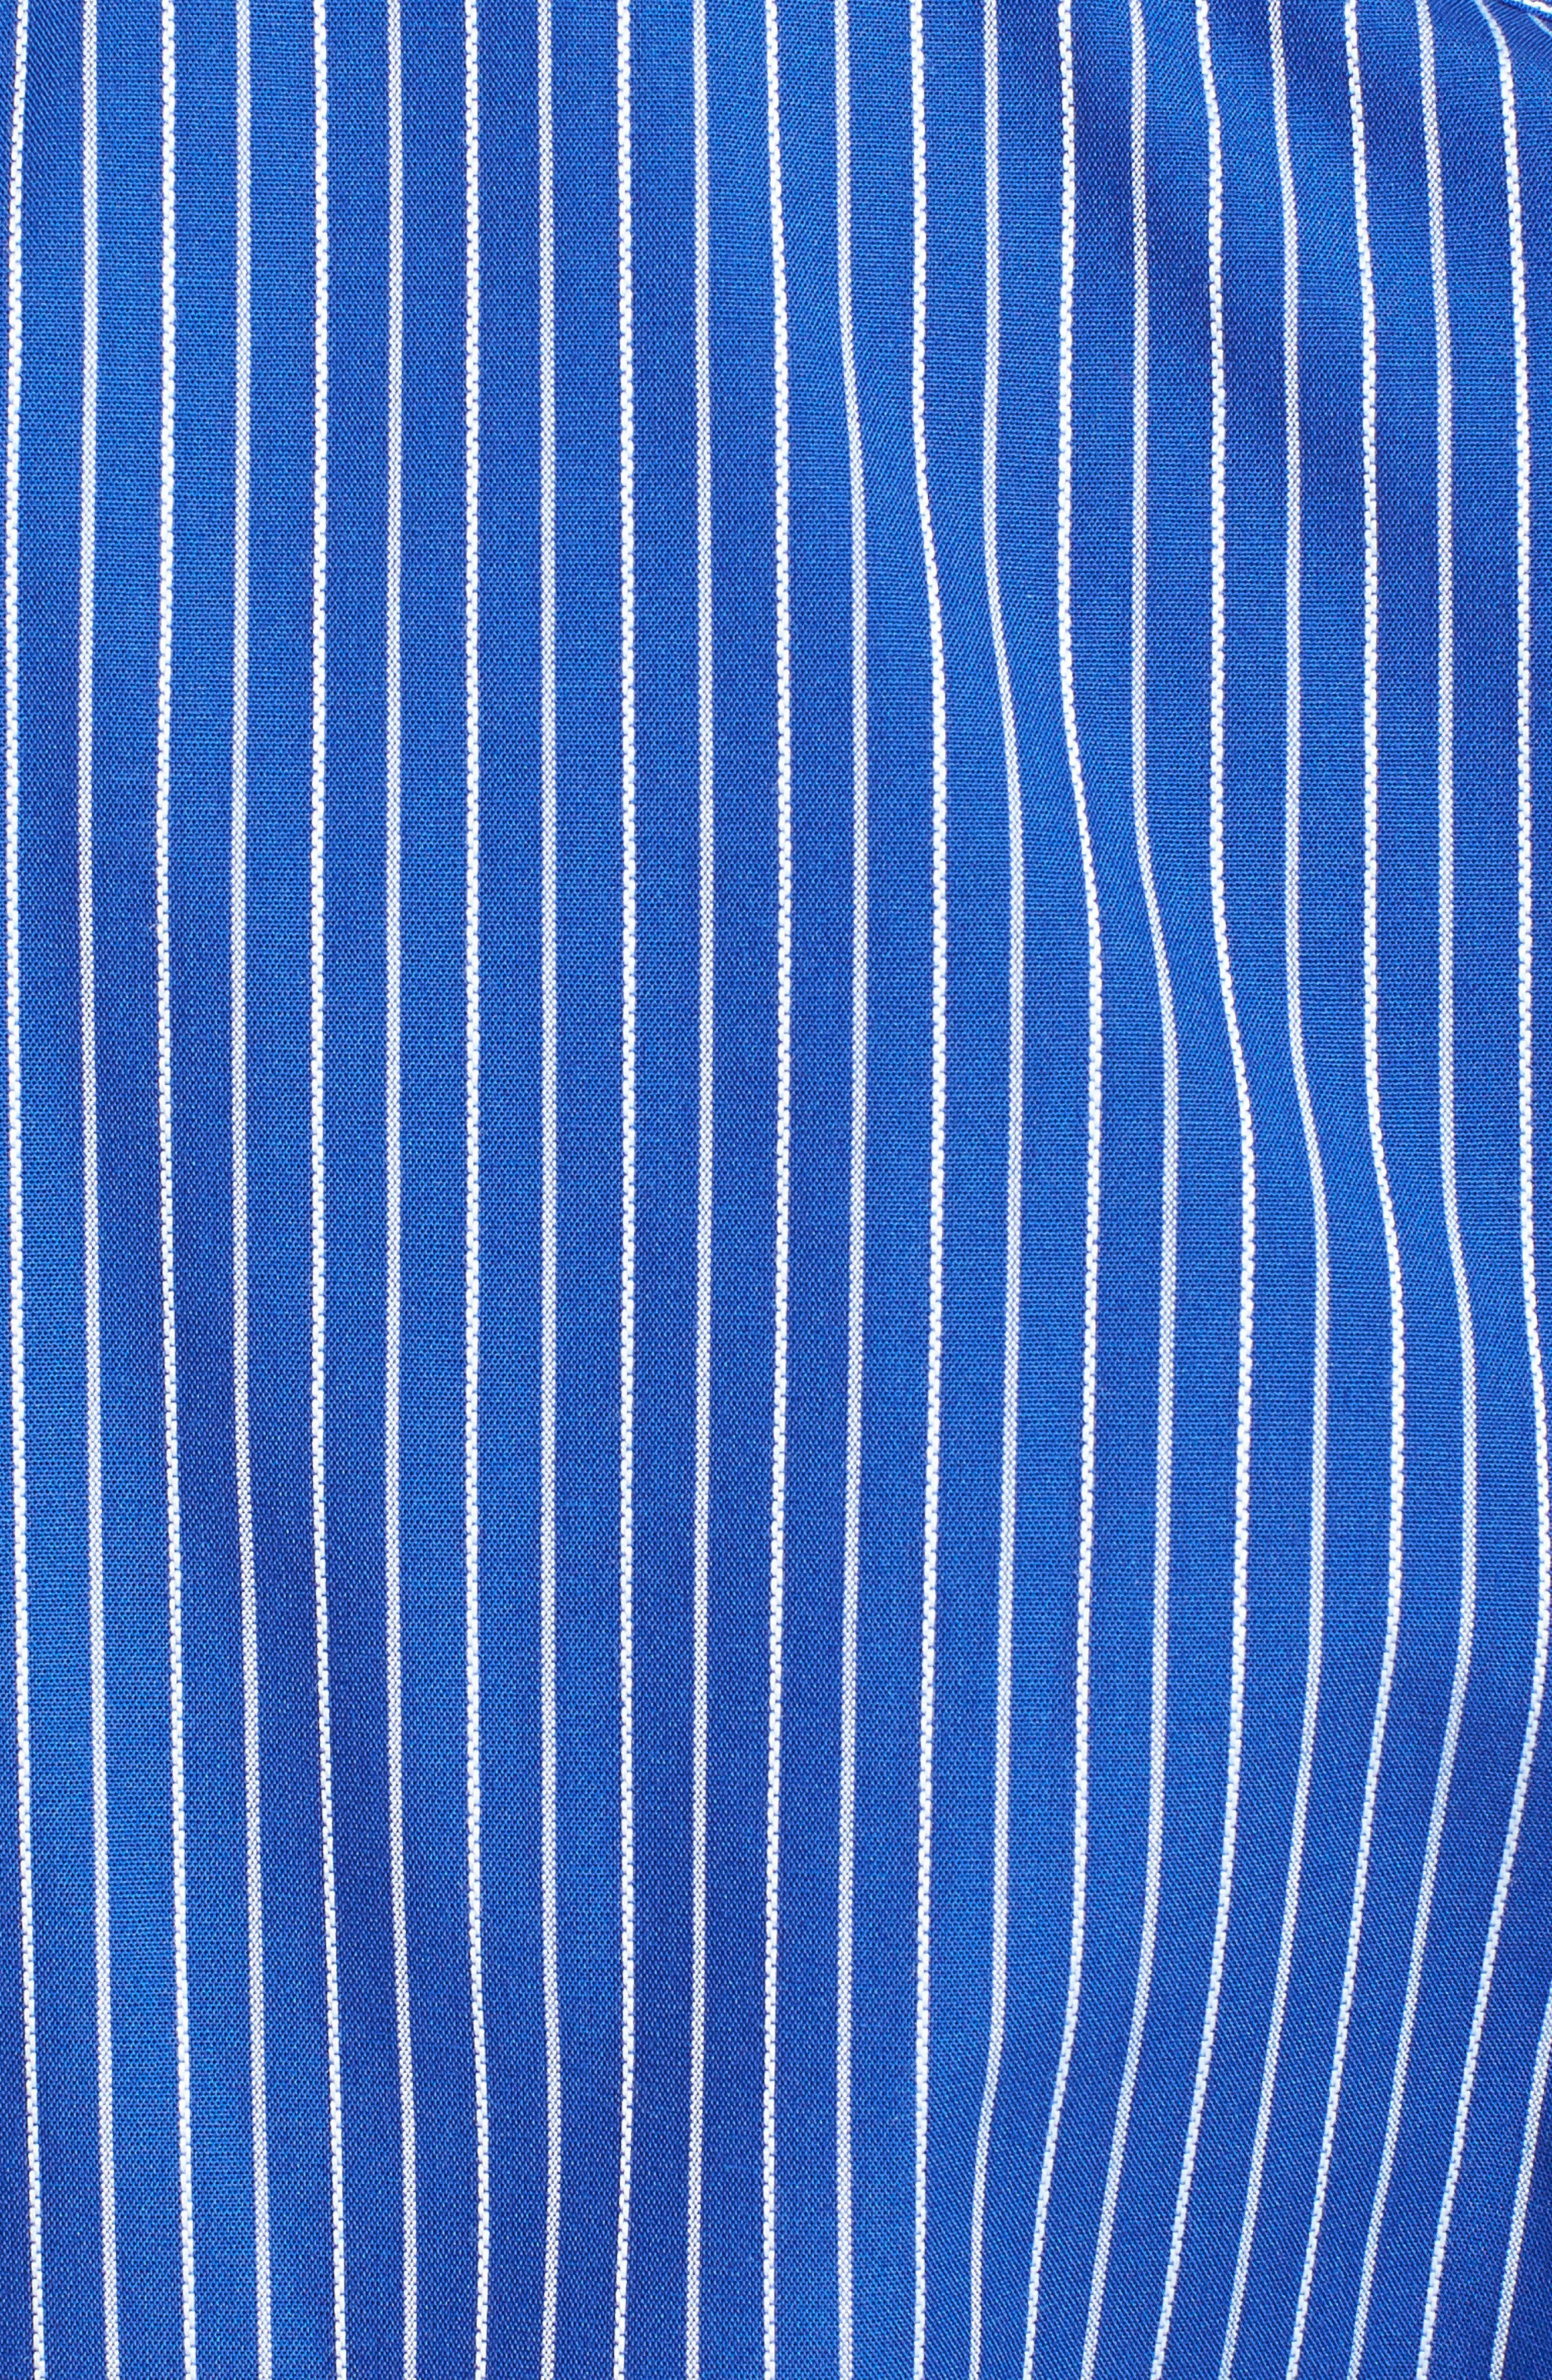 'Epic Easy Care' Classic Fit Vertical Pinstripe Wrinkle Resistant Sport Shirt,                             Alternate thumbnail 4, color,                             460